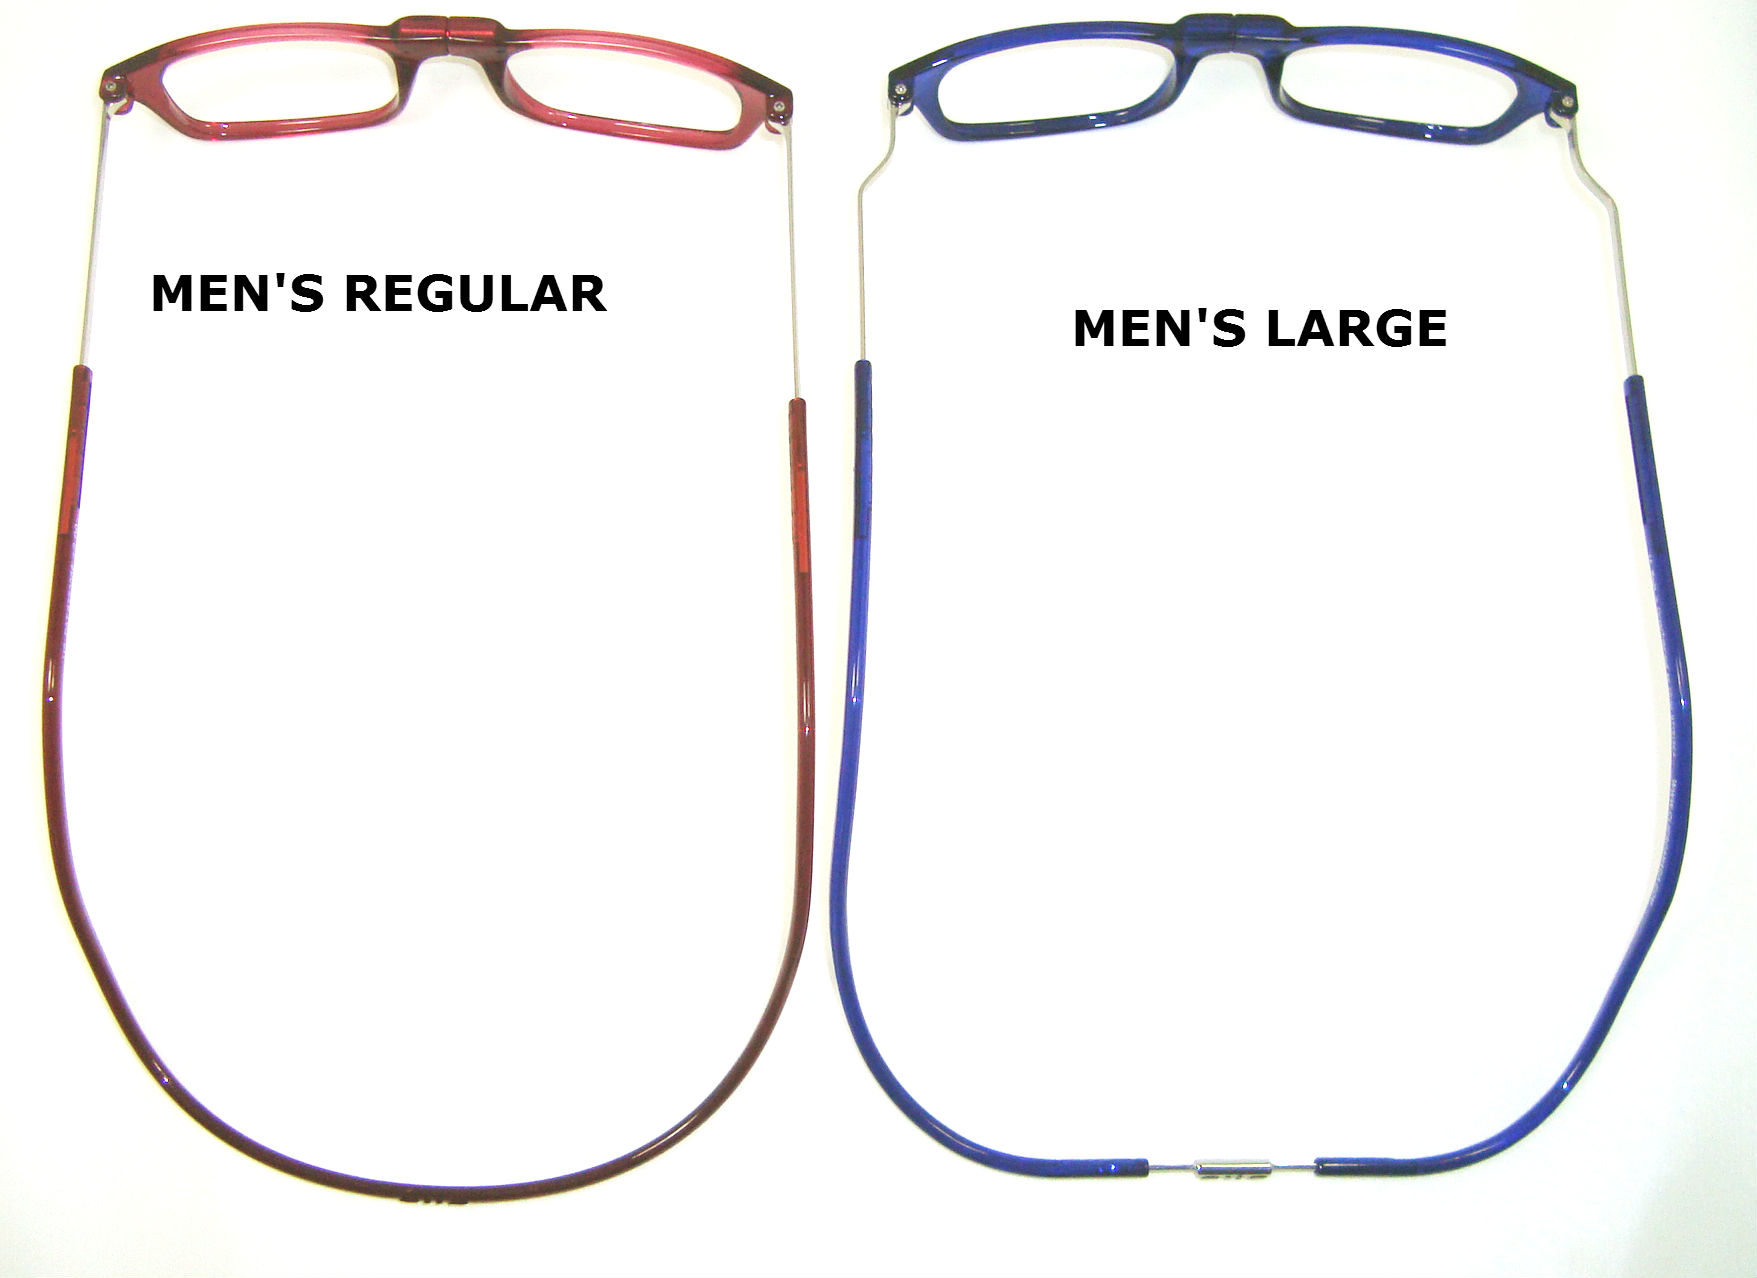 MEN'S REGULAR & LARGE WEB